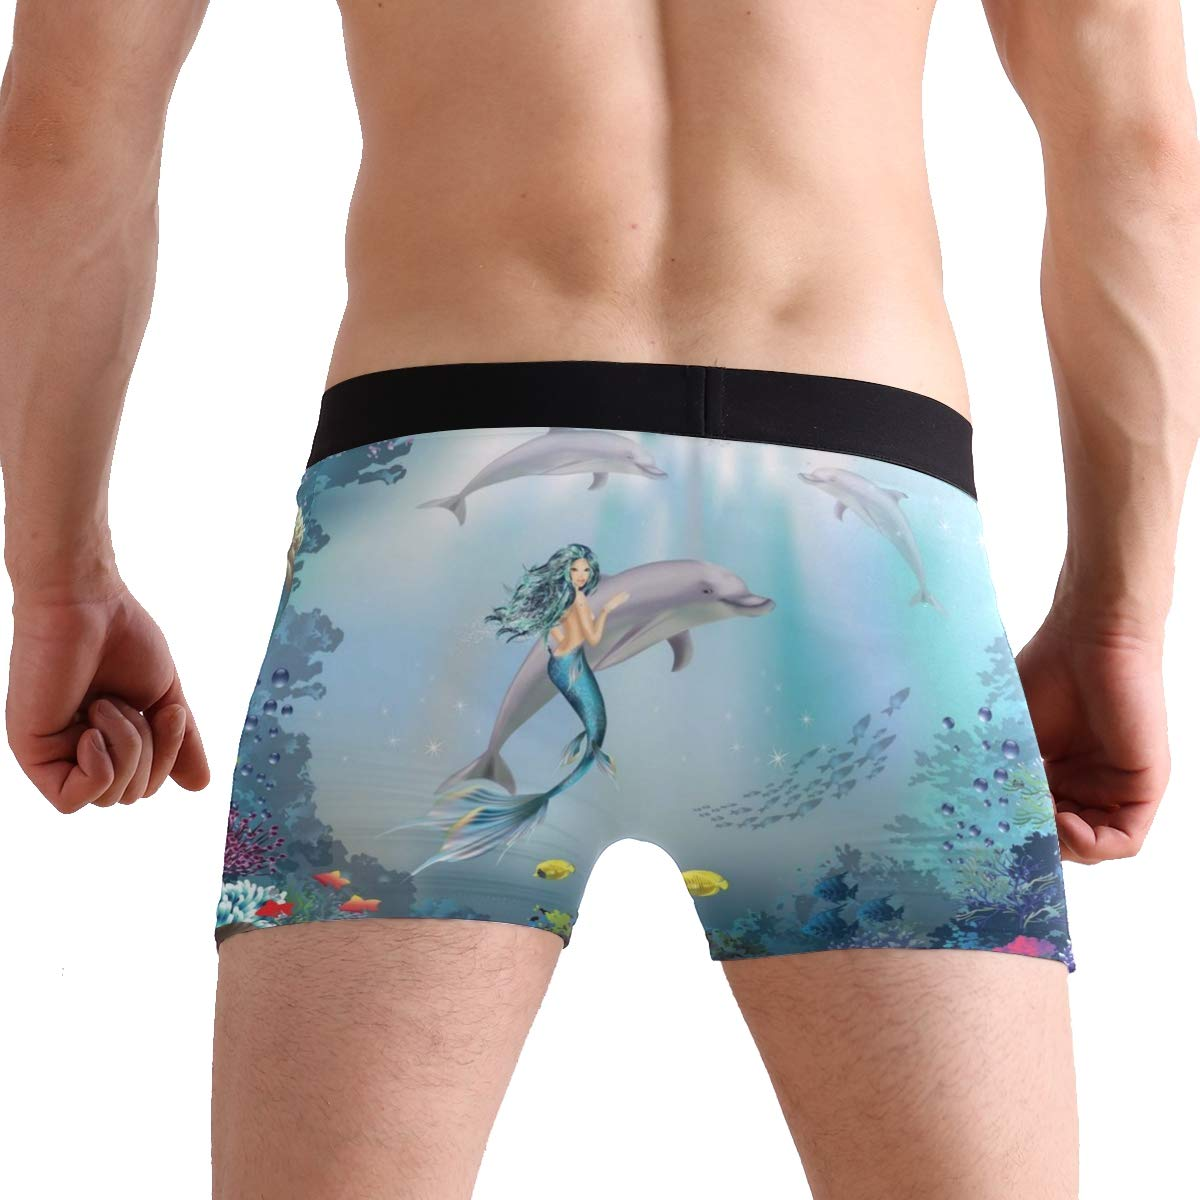 KUWT Underwater World Dolphins Mermaid Mens Boxer Briefs Underwear Comfortable Underpants for Mens Boys Youth